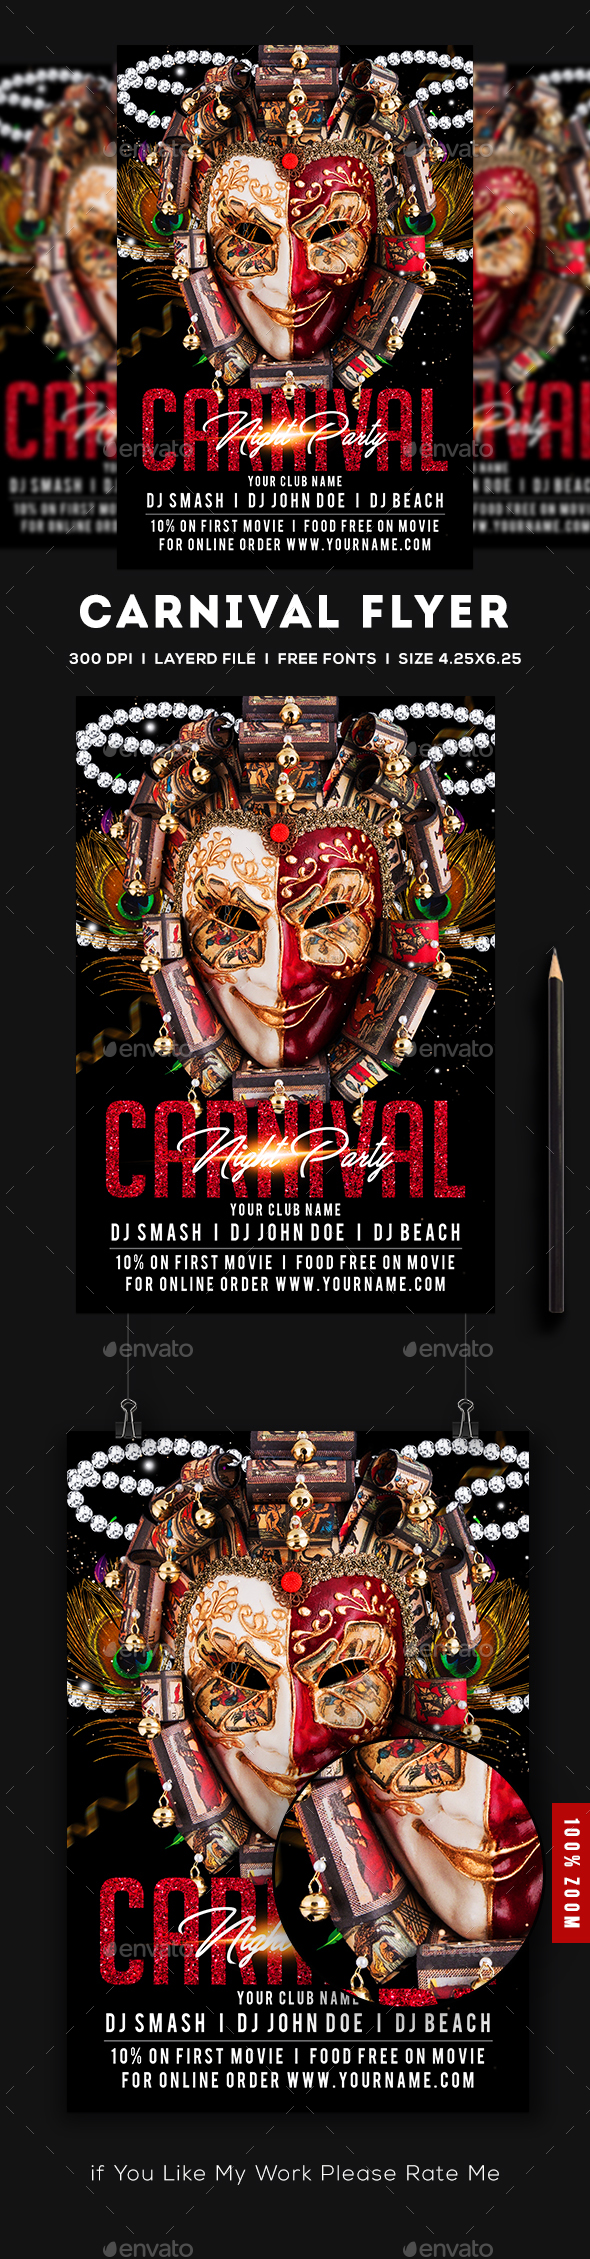 Carnival Flyer - Flyers Print Templates